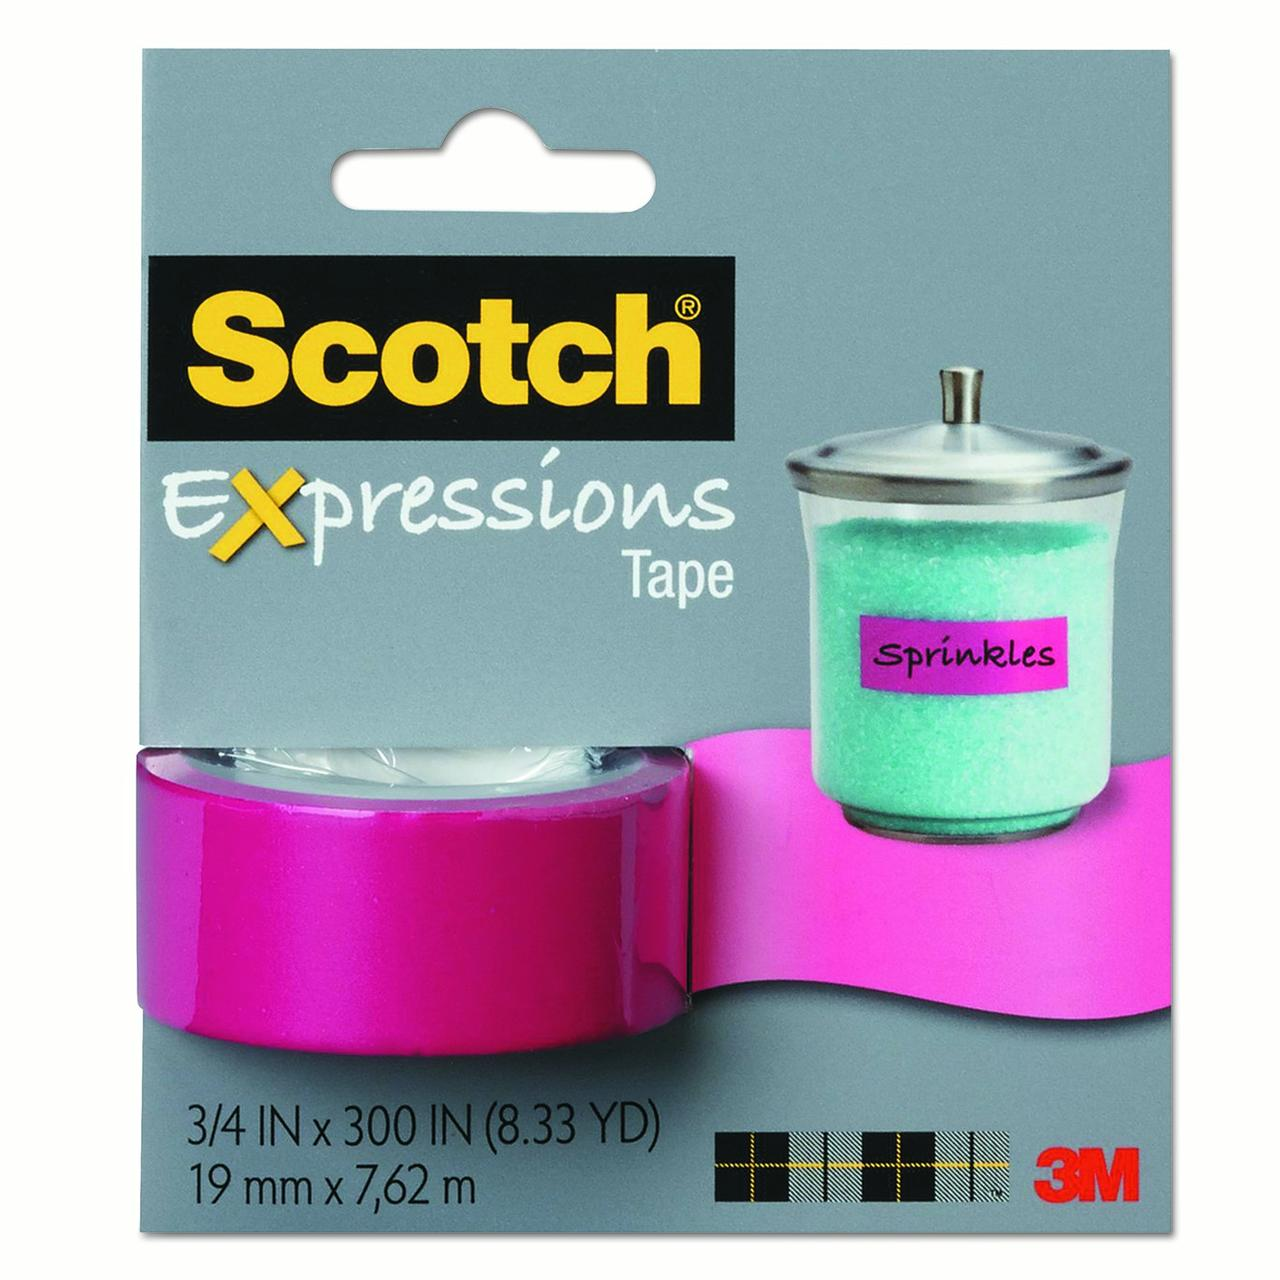 "Scotch Expressions Magic Tape, 3/4"" x 300"", Pink"